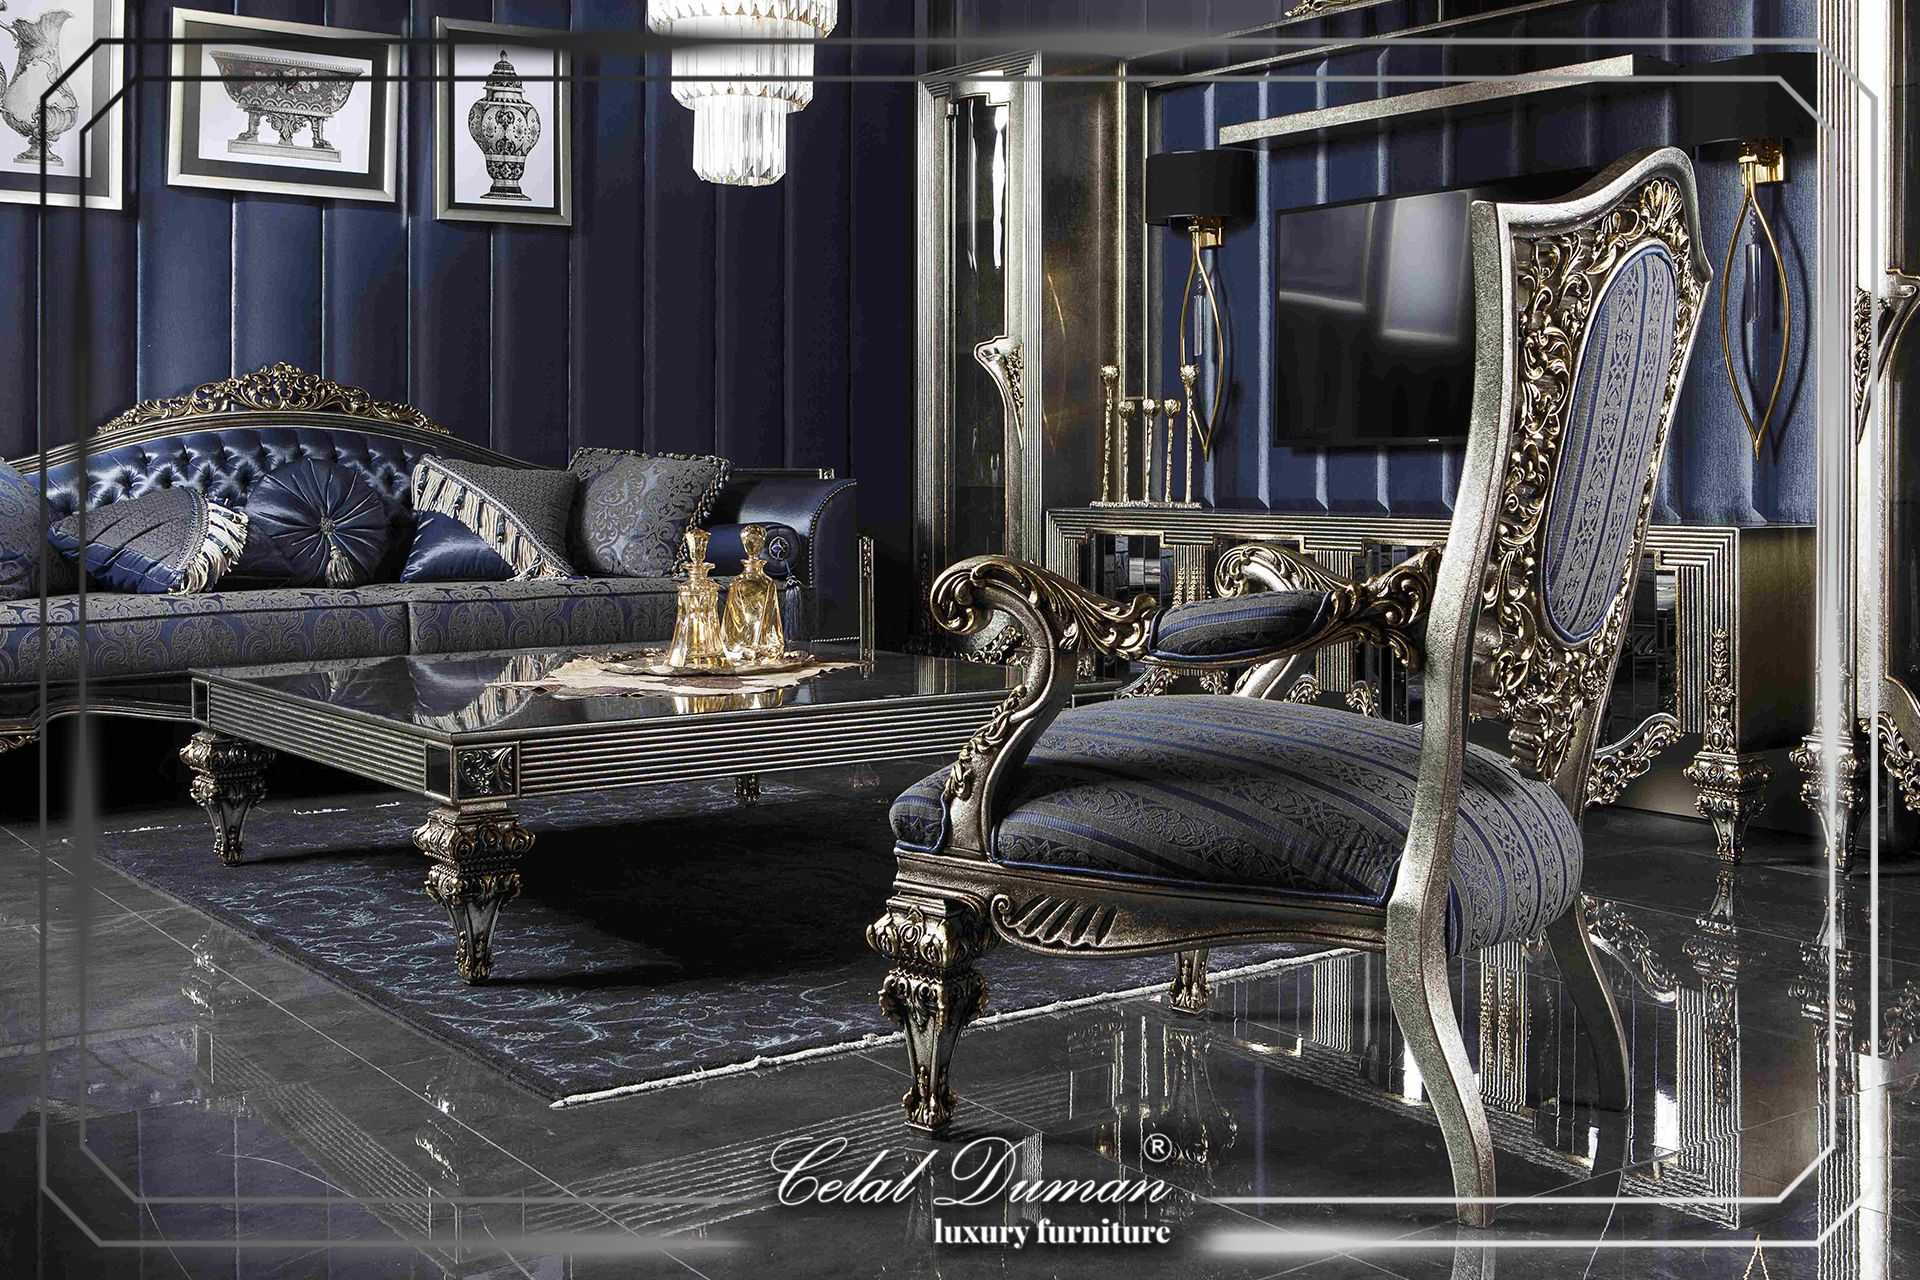 Pin By Celal Duman Mobilya On Gothic Furniture In 2020 Luxury Furniture Sofa Luxury Furniture Design Luxury Sofa